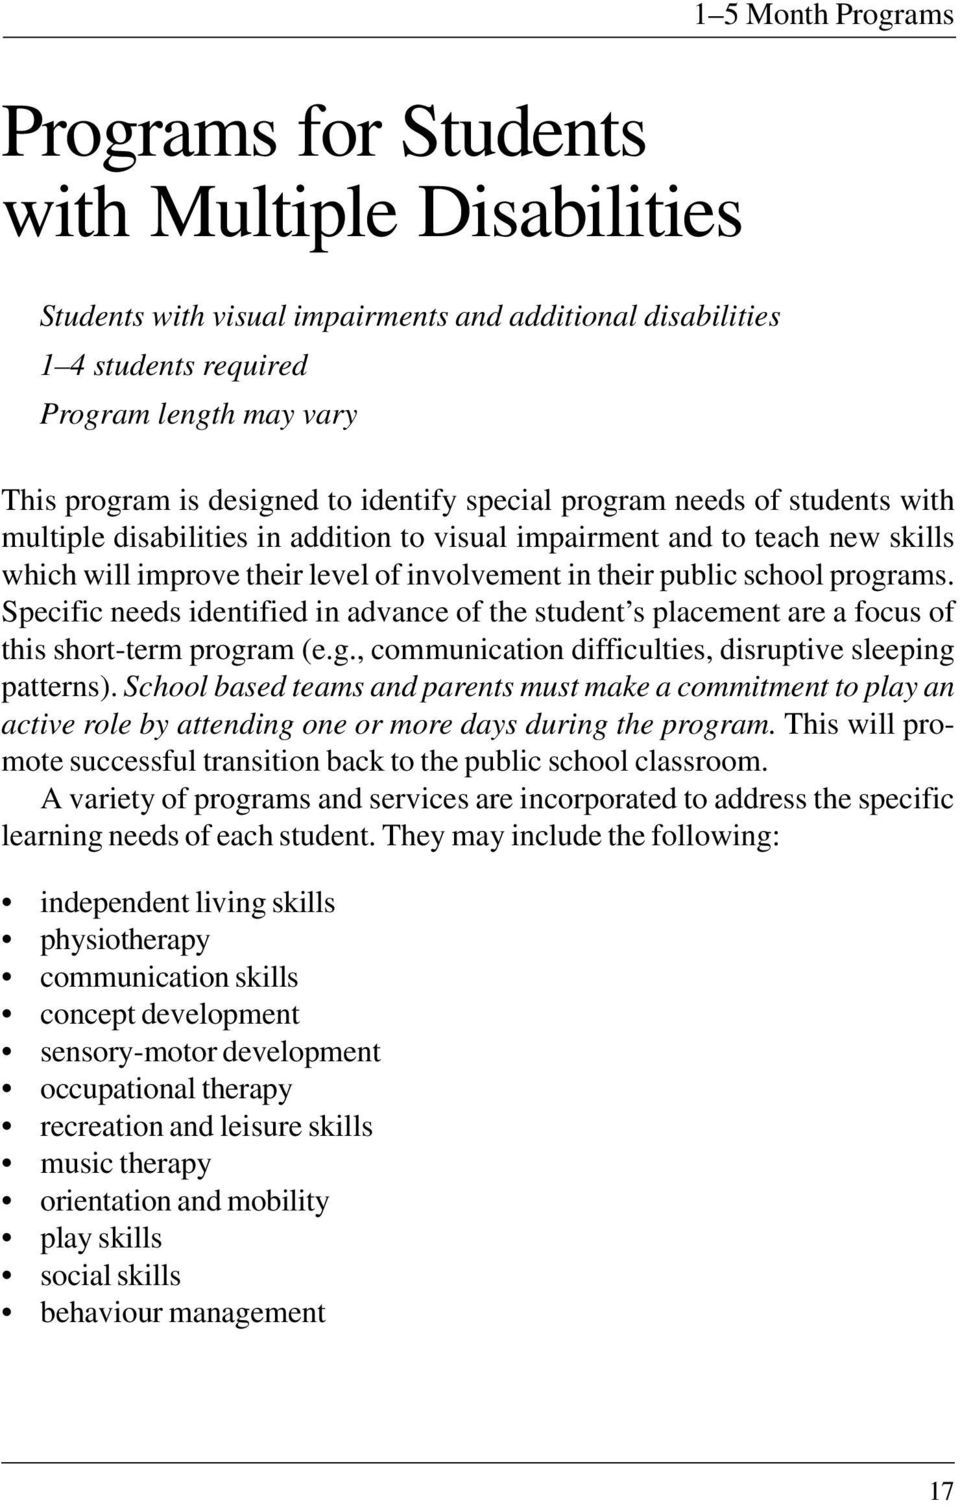 programs. Specific needs identified in advance of the student s placement are a focus of this short-term program (e.g., communication difficulties, disruptive sleeping patterns).